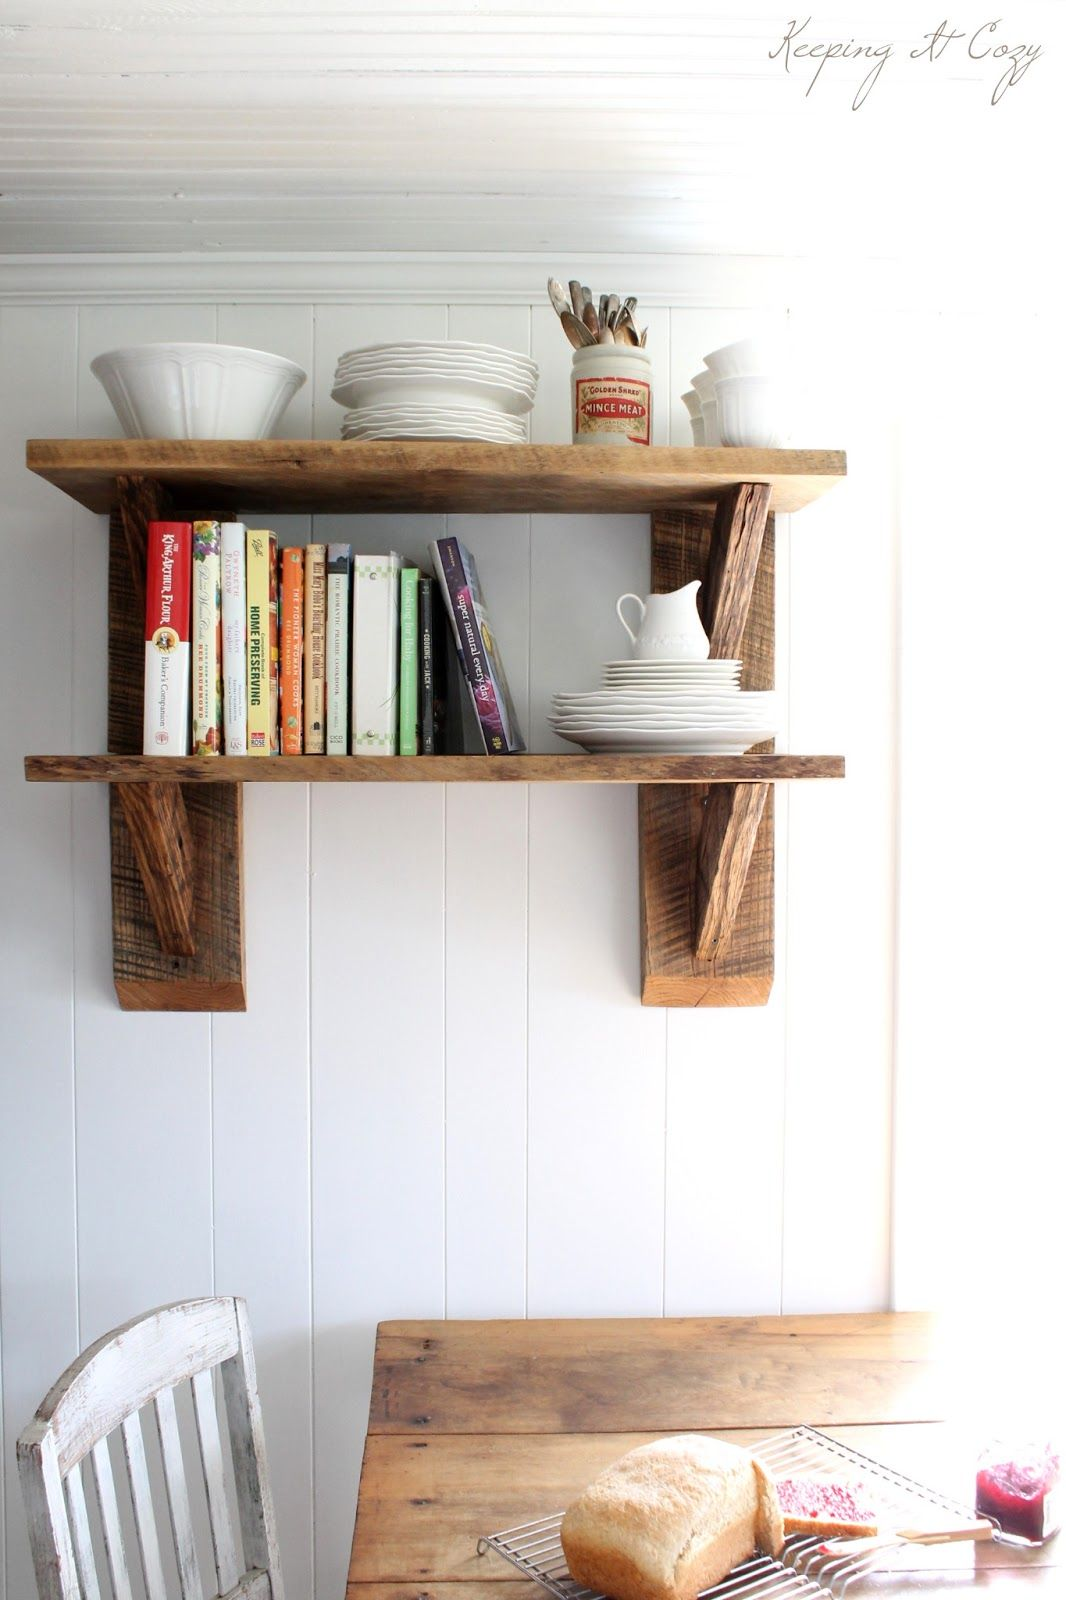 Captivating Rustic Shelves From Reclaimed Wood